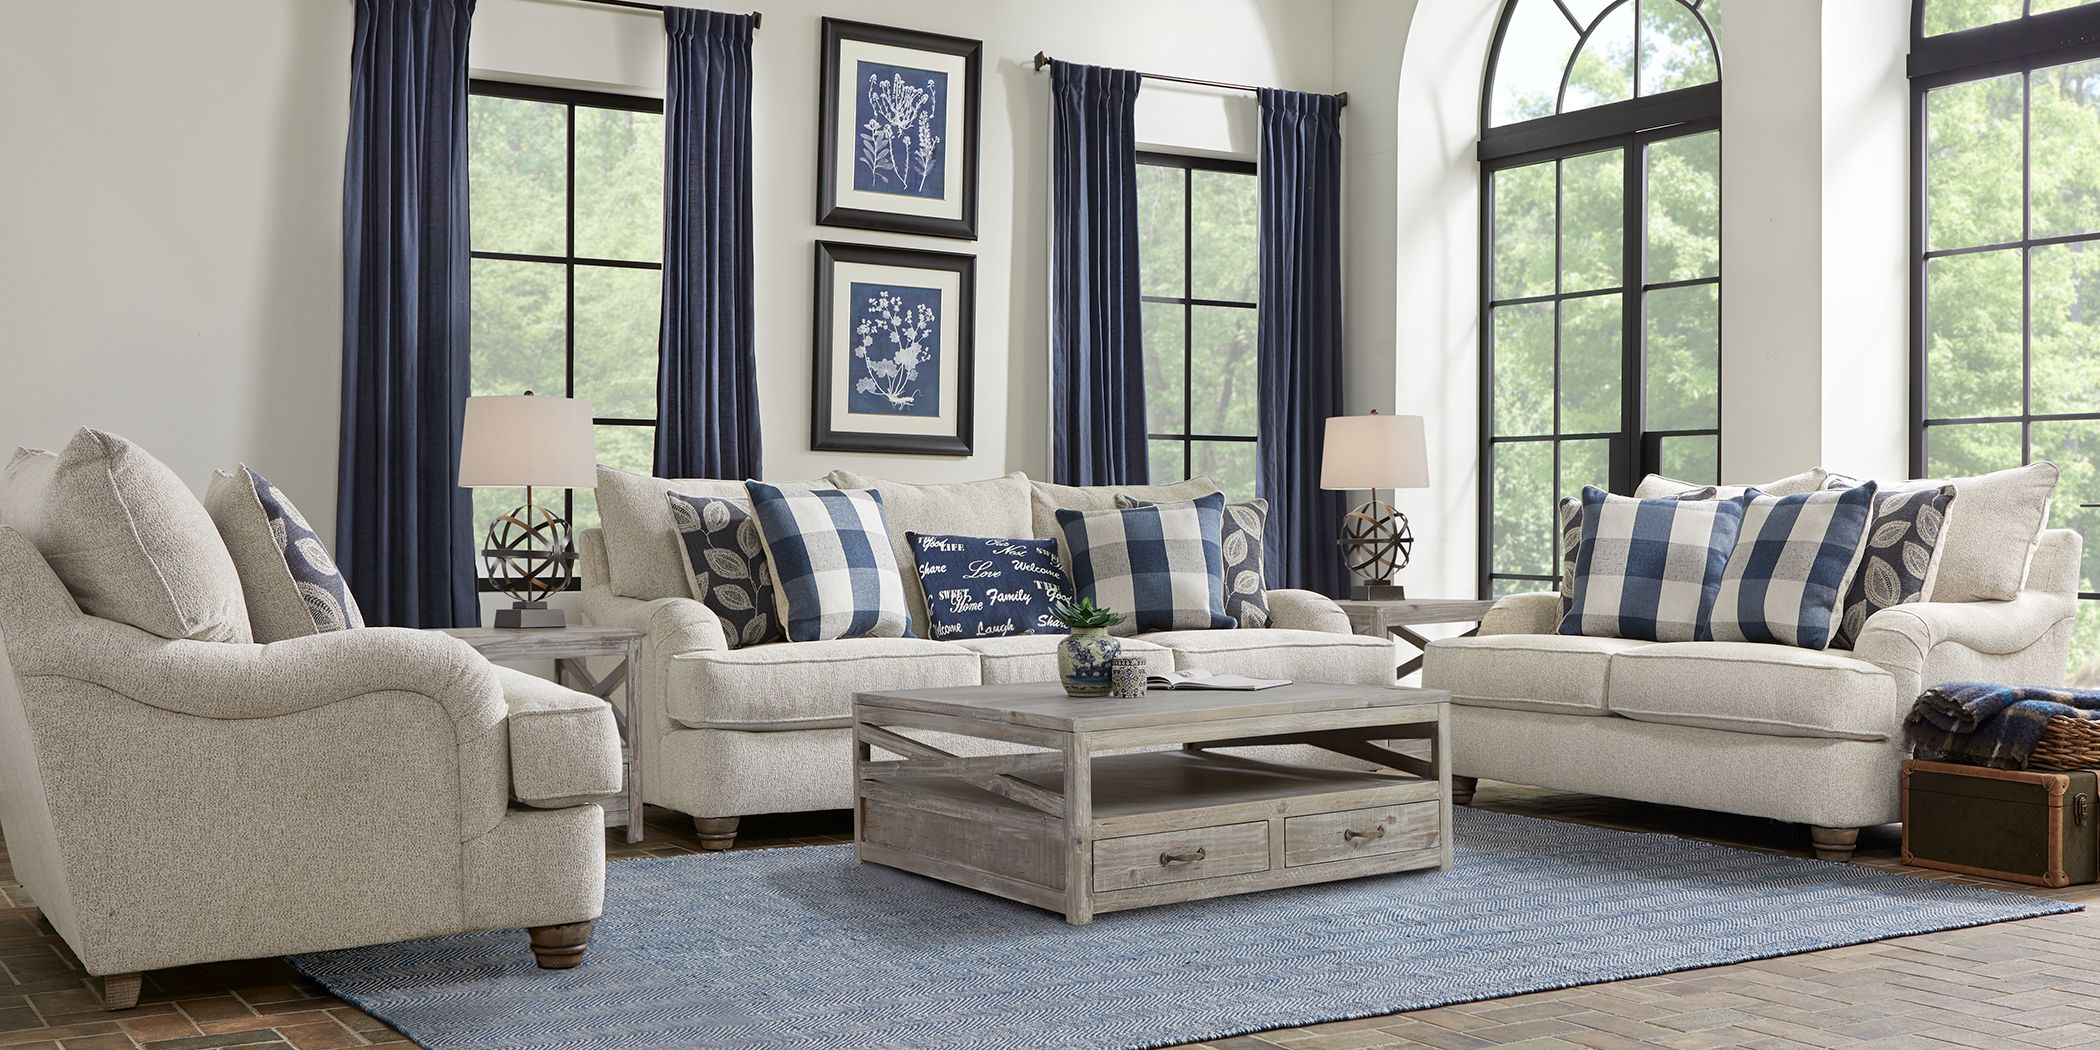 Best Living Room Furniture At Rooms To Go